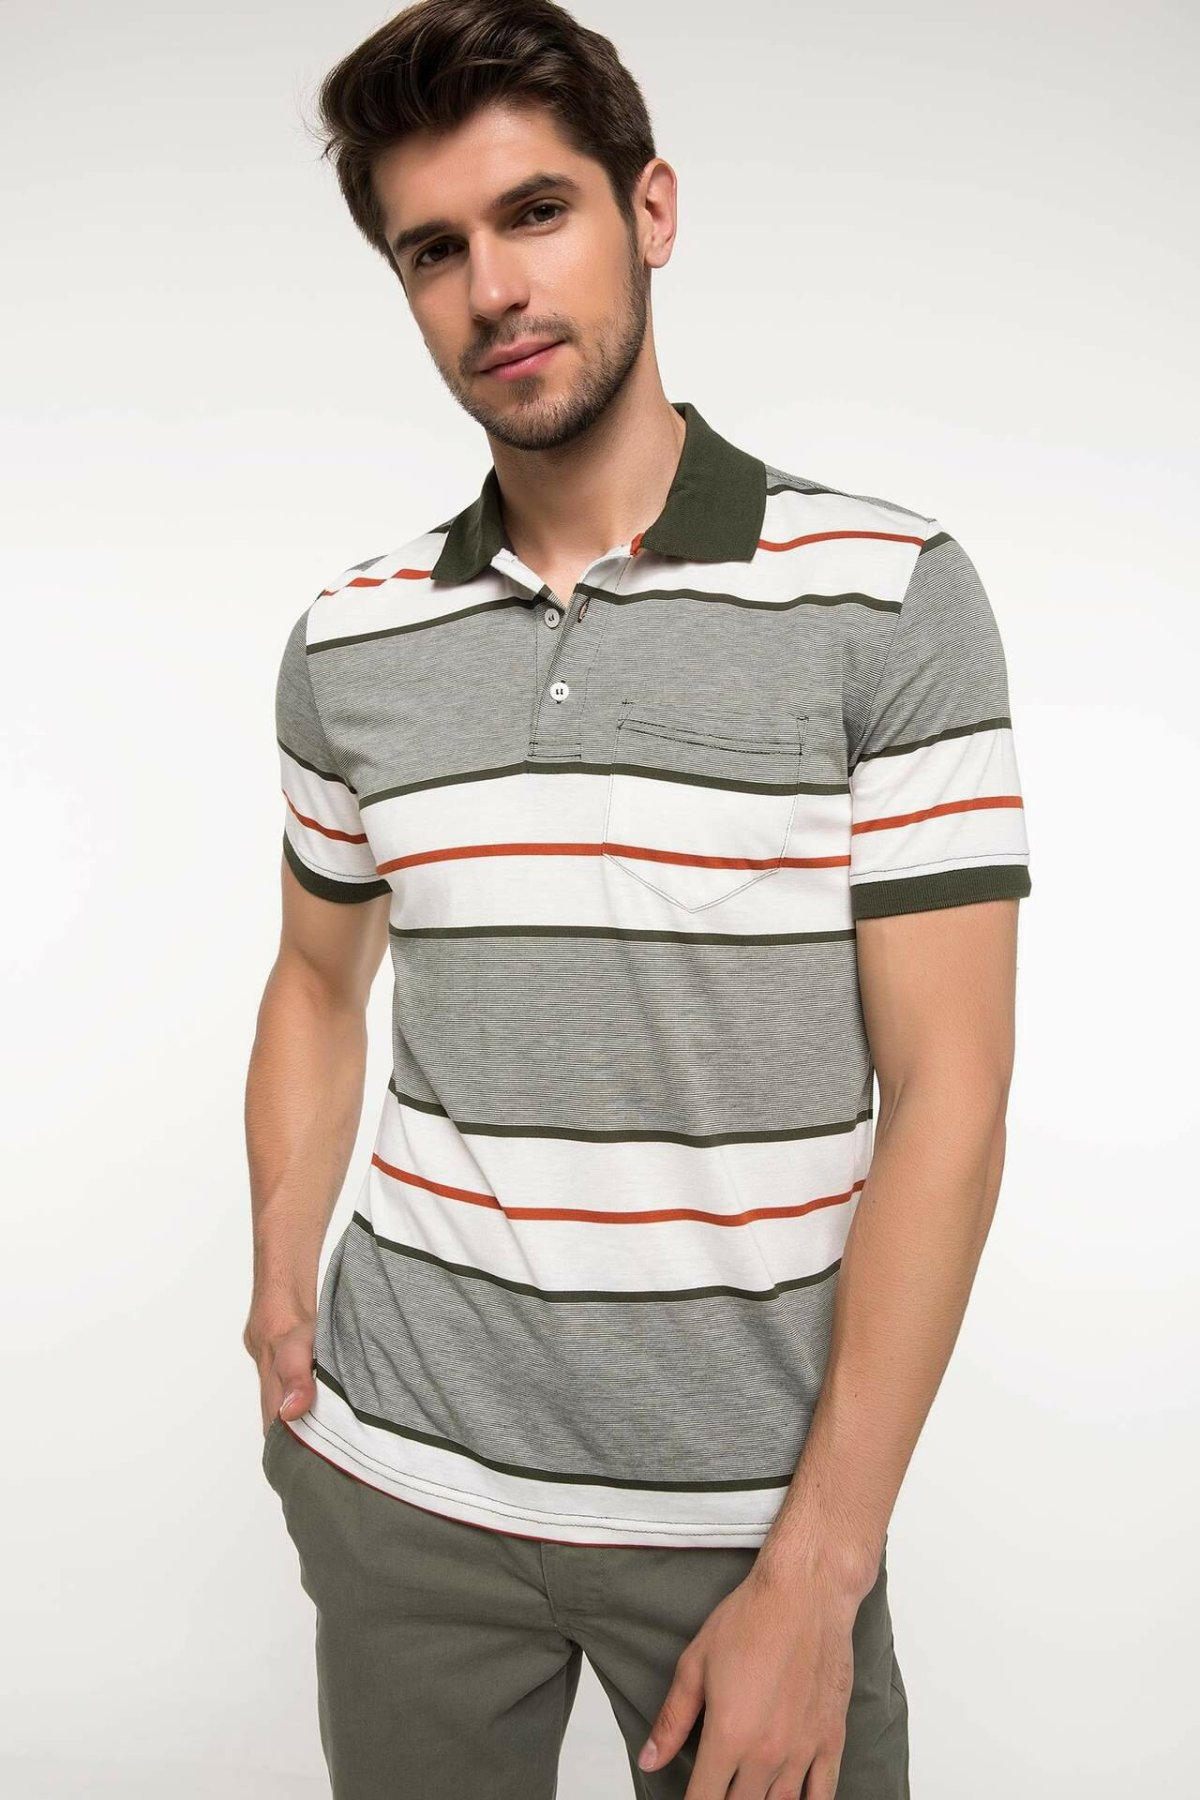 DeFacto Men Summer Polo Shirt Casual Striped Color Cotton Short Sleeve Polo Shirts Male Simple Breathable Tops Tee-I8519AZ18SM